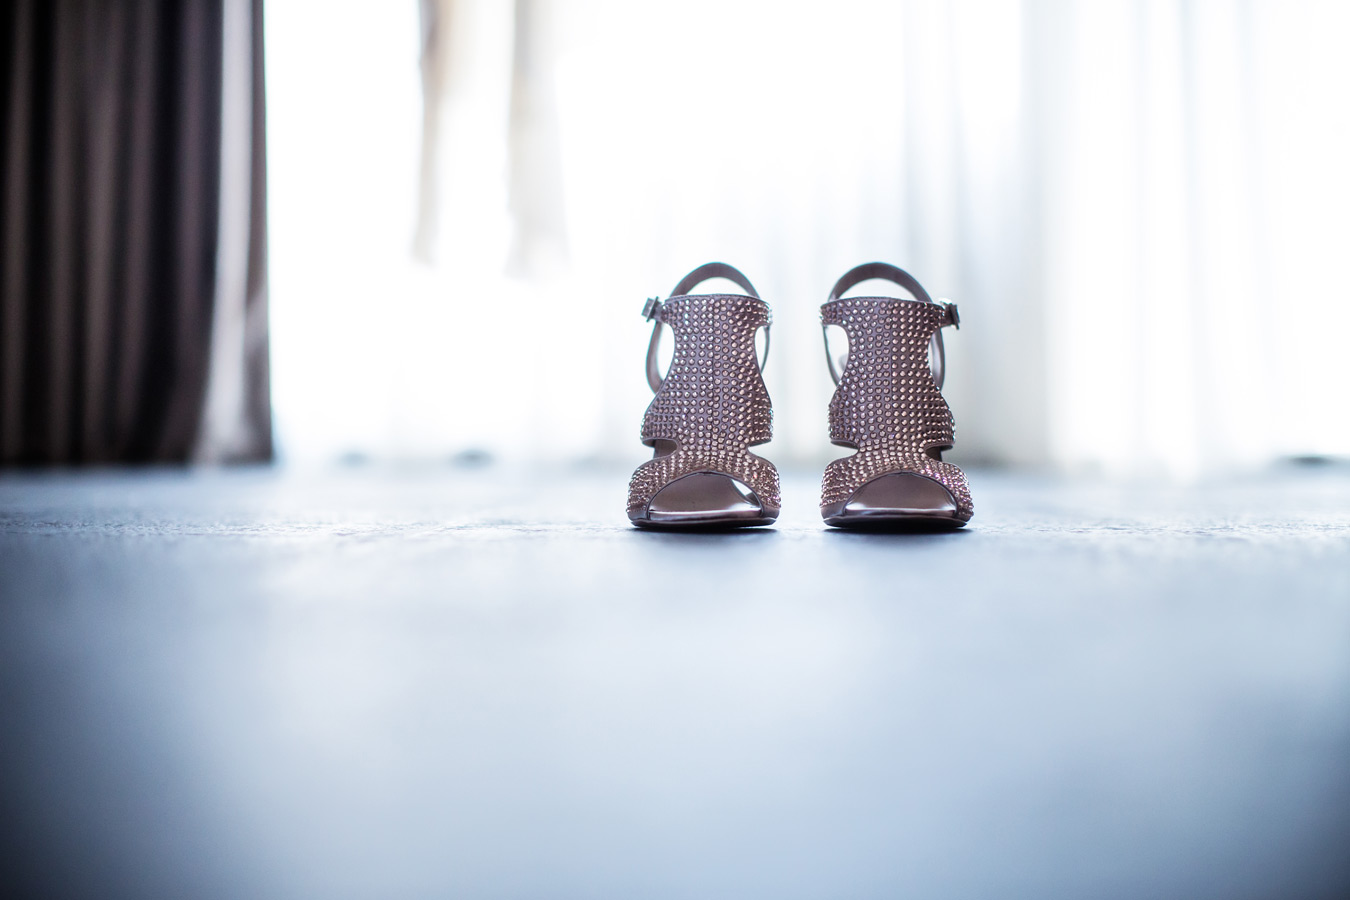 One of a set of images taken at Vanessa and Thor's destination Wedding in the beautiful Porto Montenegro. Brides's Wedding shoes.  Wedding Photography By Matt Porteous